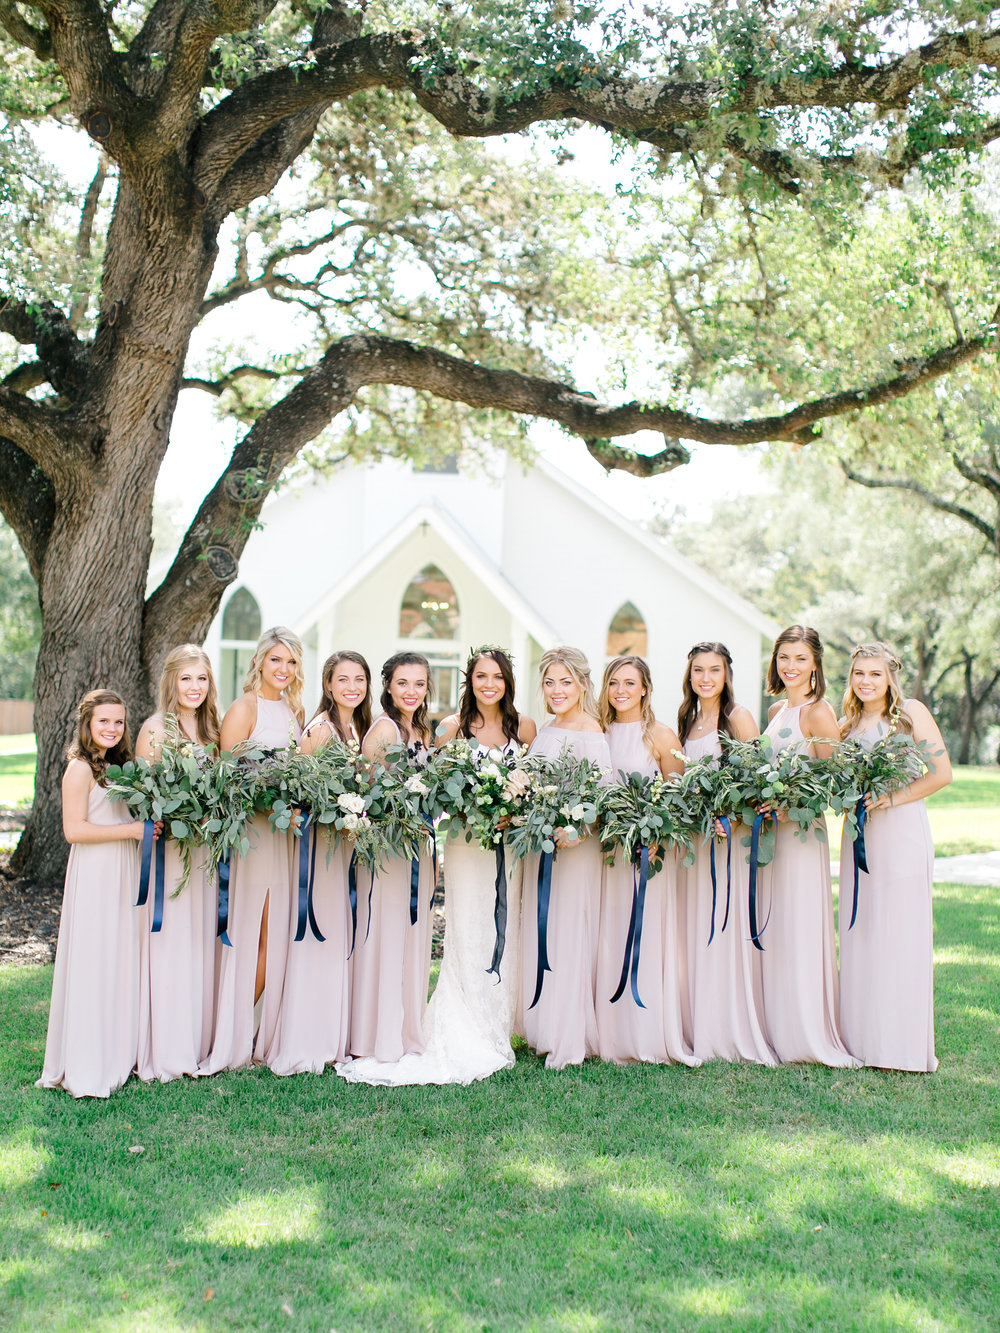 Chandelier_of_Gruene_Wedding_Summer_Barrett-103.jpg